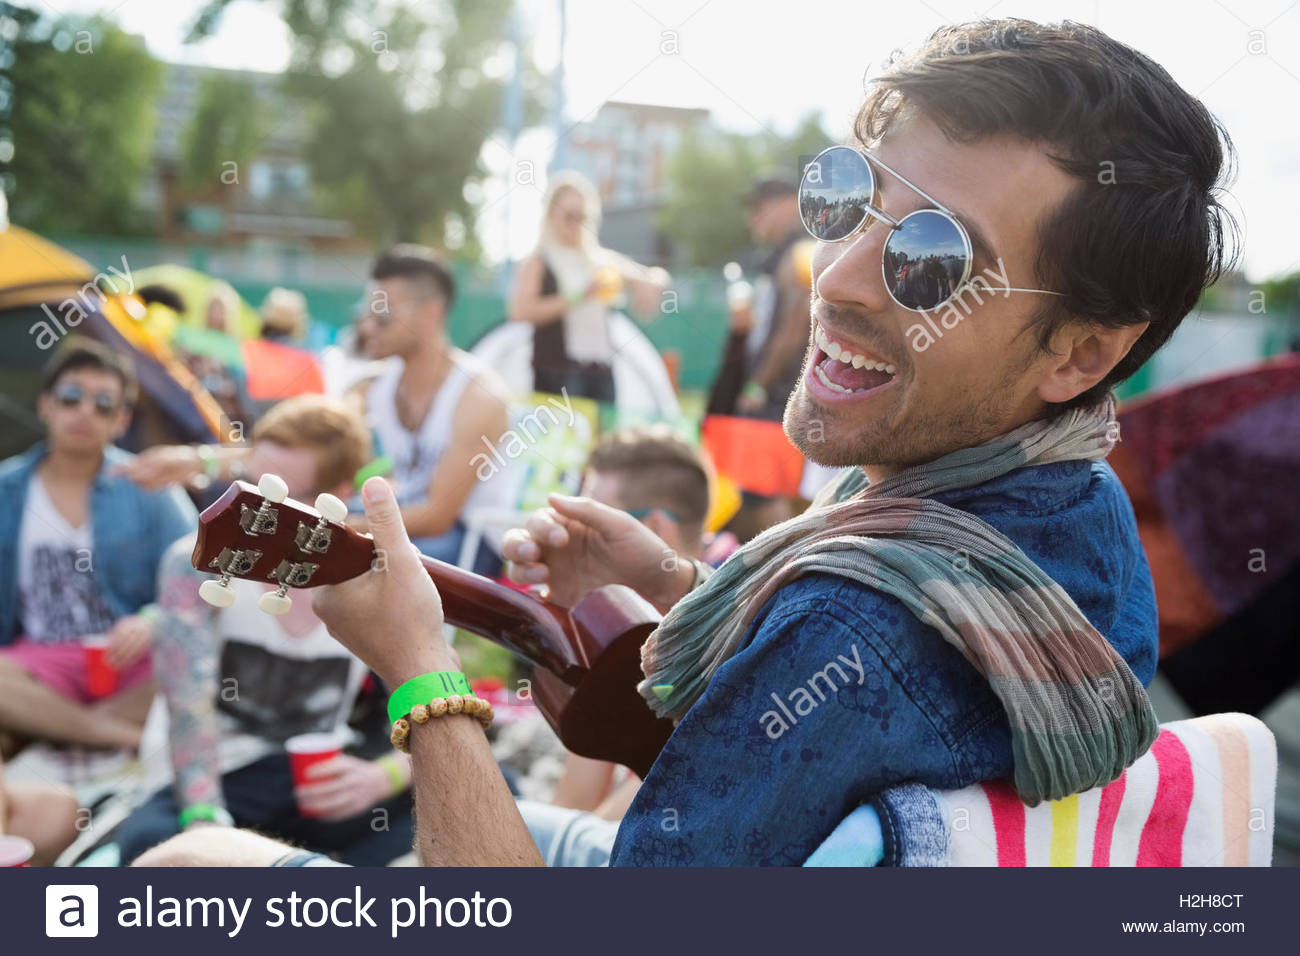 Portrait enthusiastic young man playing ukulele at summer music festival campsite - Stock Image